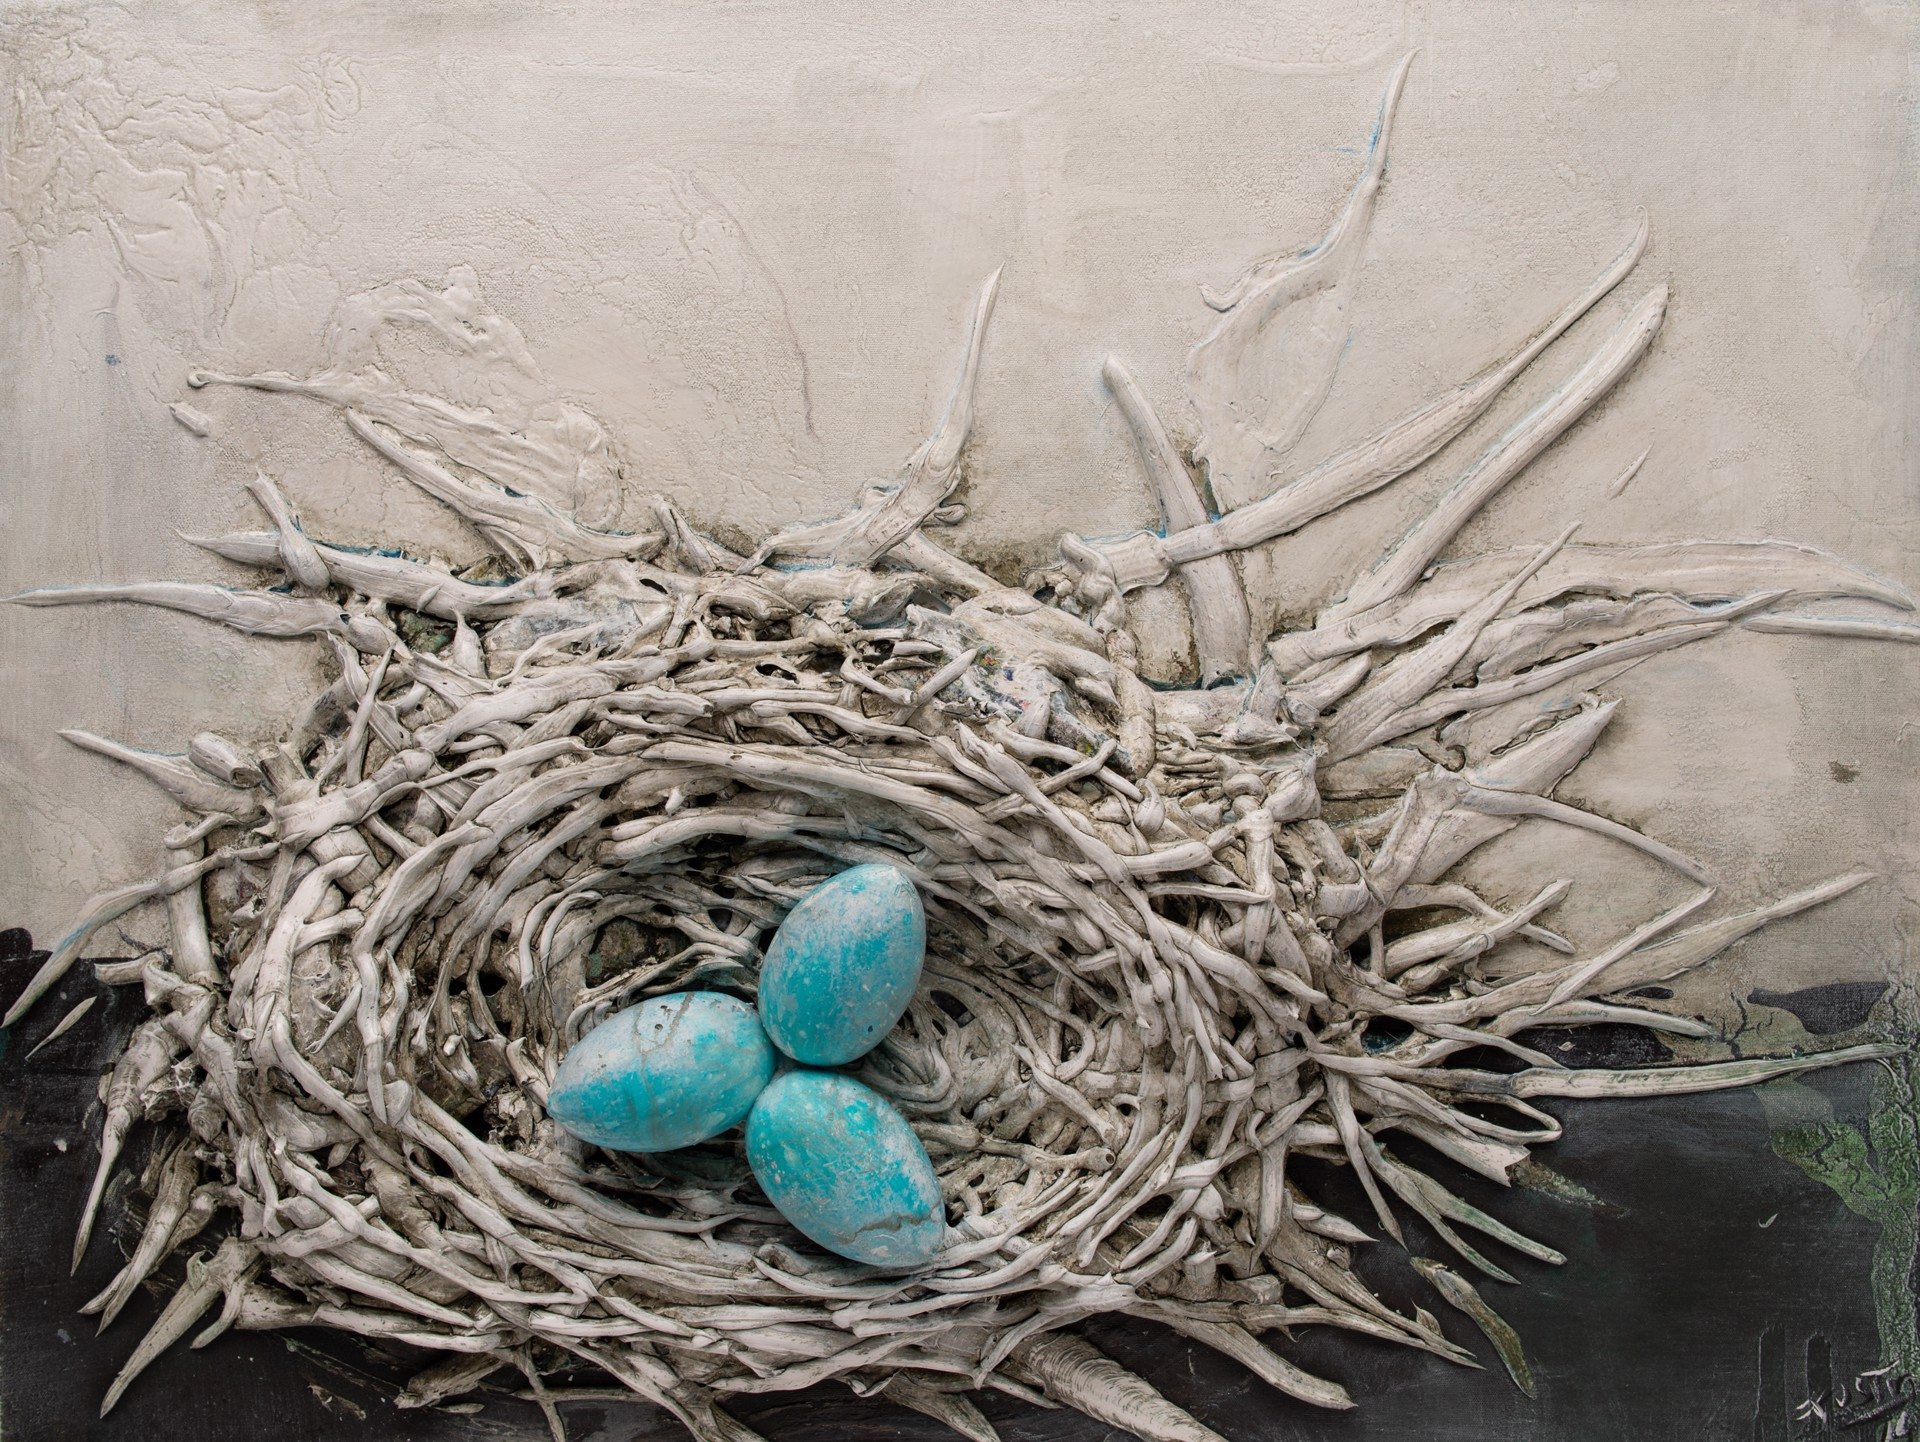 NEST NS-38x29-2019-271 by JUSTIN GAFFREY